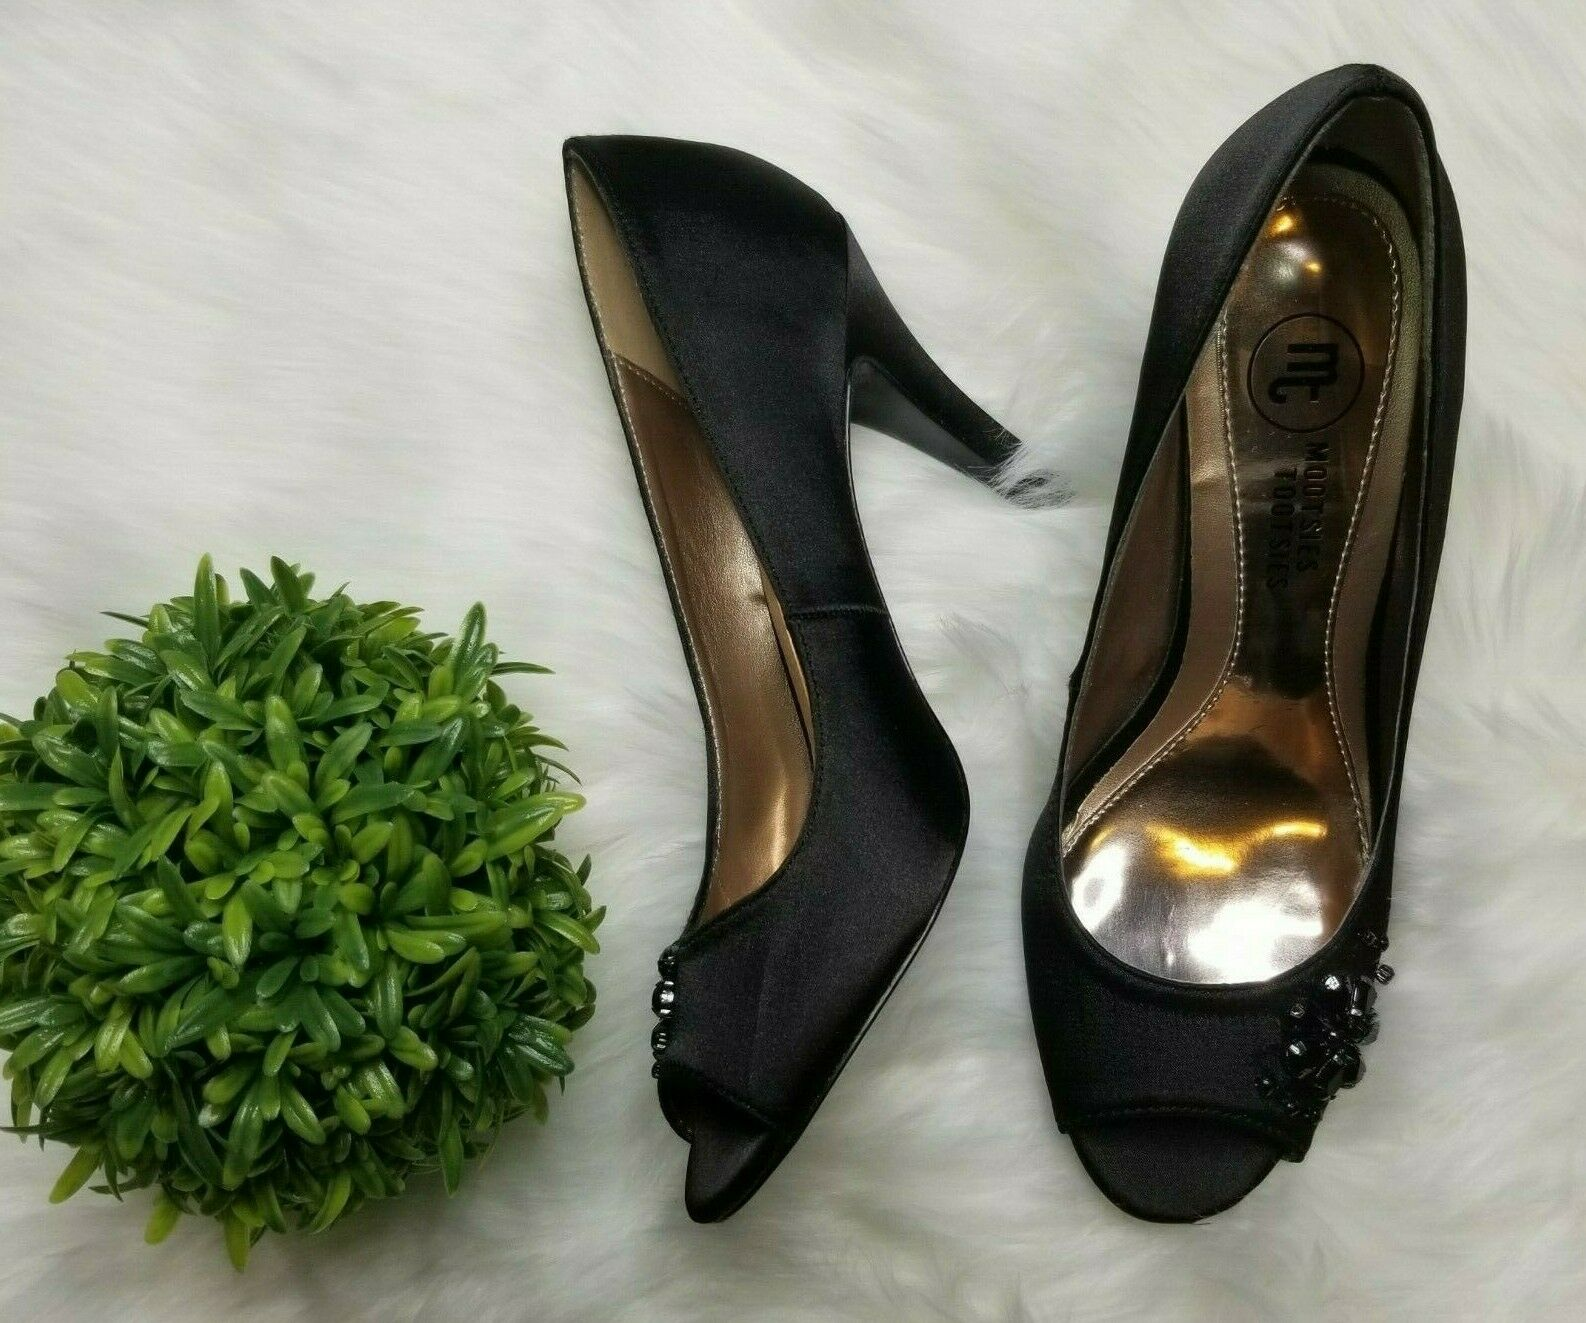 Mootsies Tootsies Black Rhinestone Flower Mobabble High Heels Size 7 1/2M